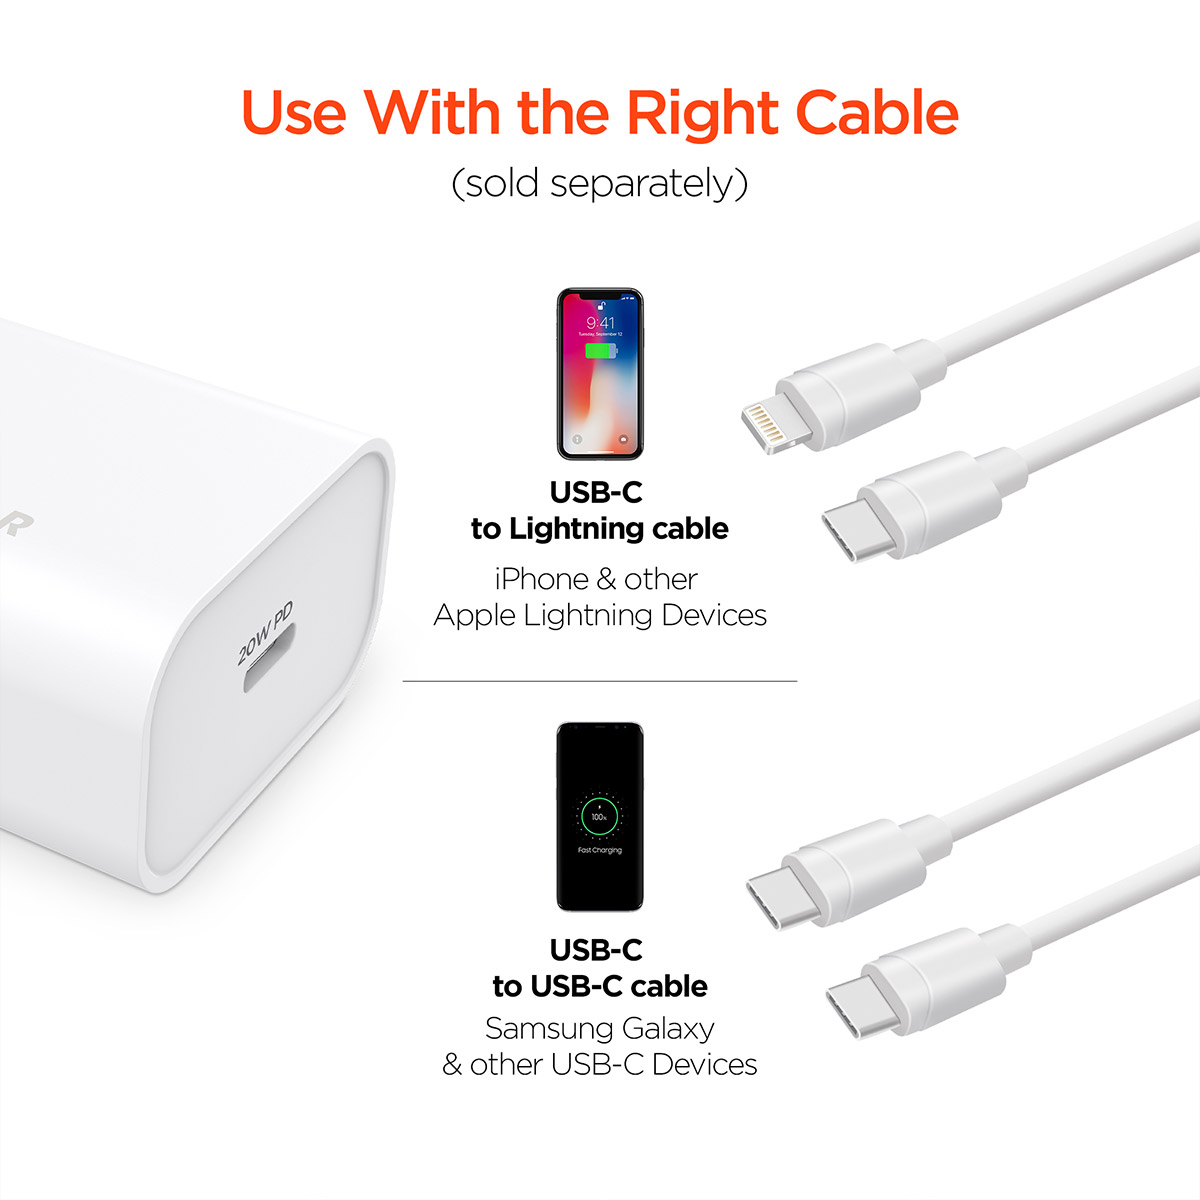 HyperGear 20W USB-C PD Wall Charger White